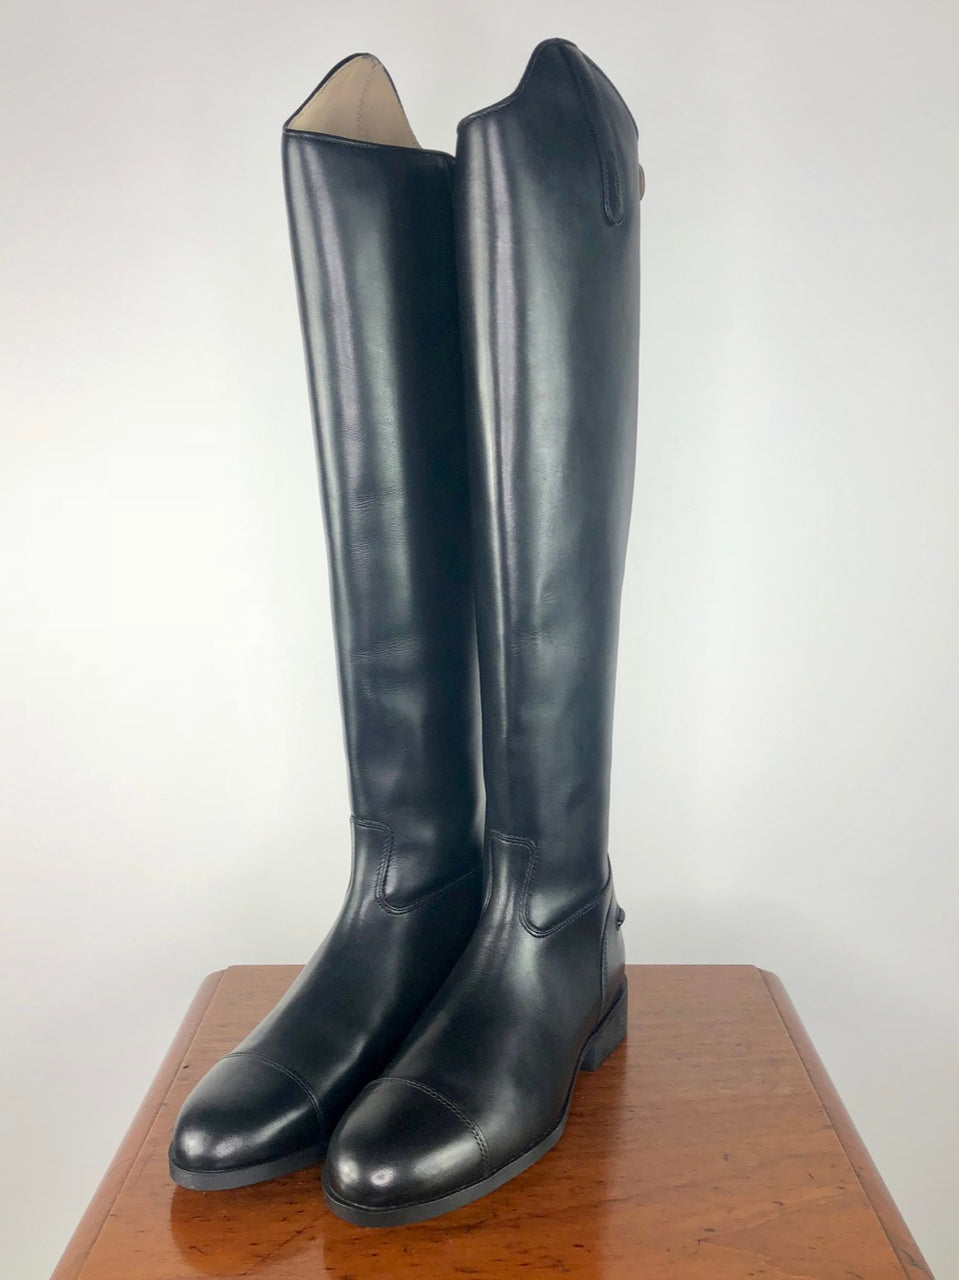 Ariat Westchester Zip Dress Boot in Black - Women's US 8 Tall/Full